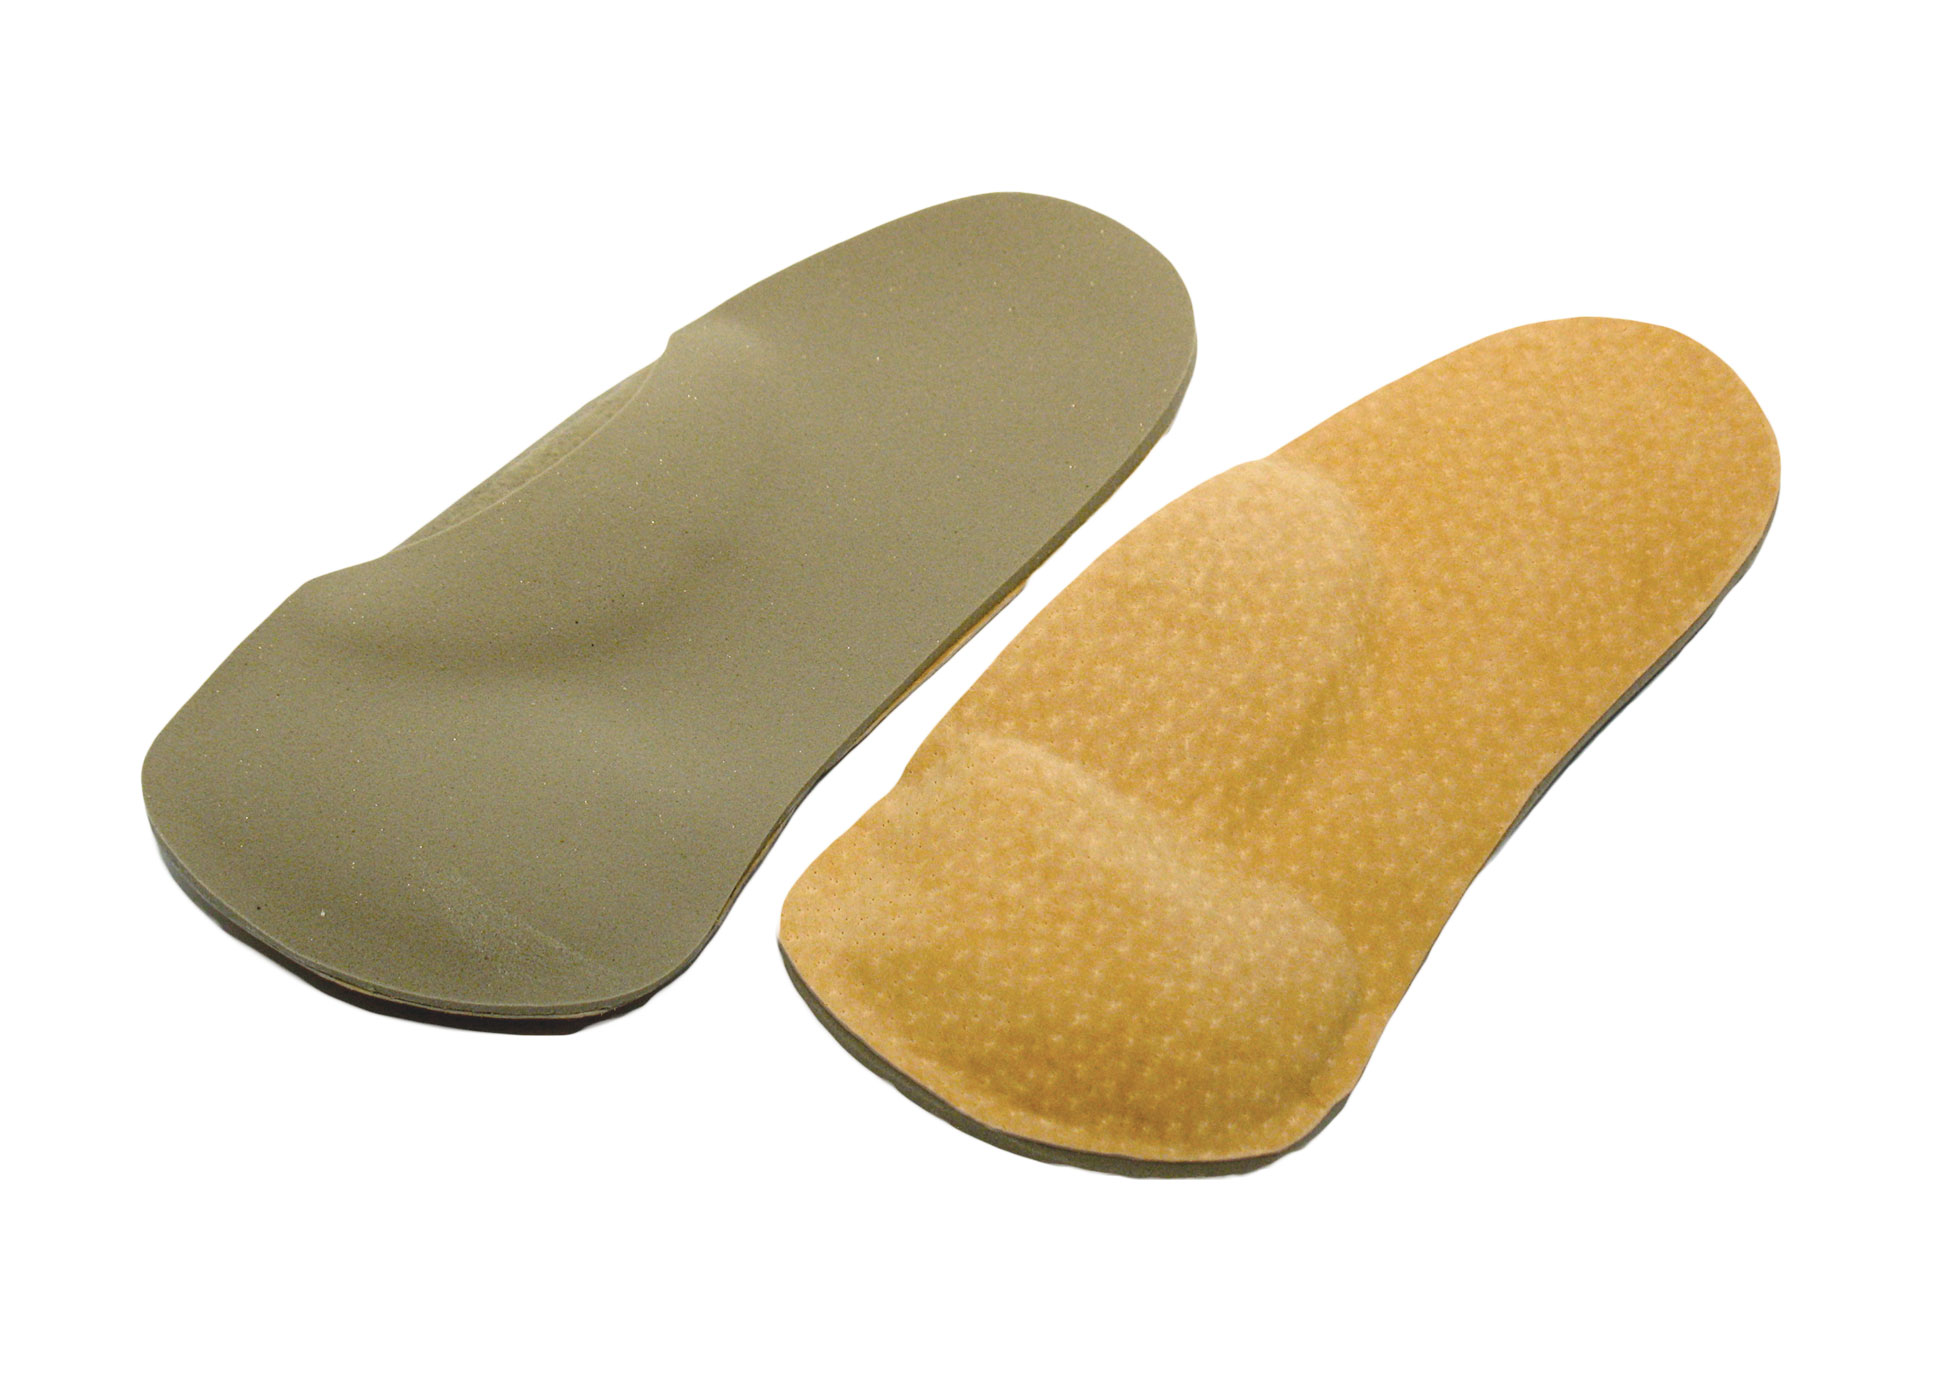 Haplabase Orthotic - Foot Supports - Model 405 - Per Pair - Met and Valgus Pads - Womens 6 - 8